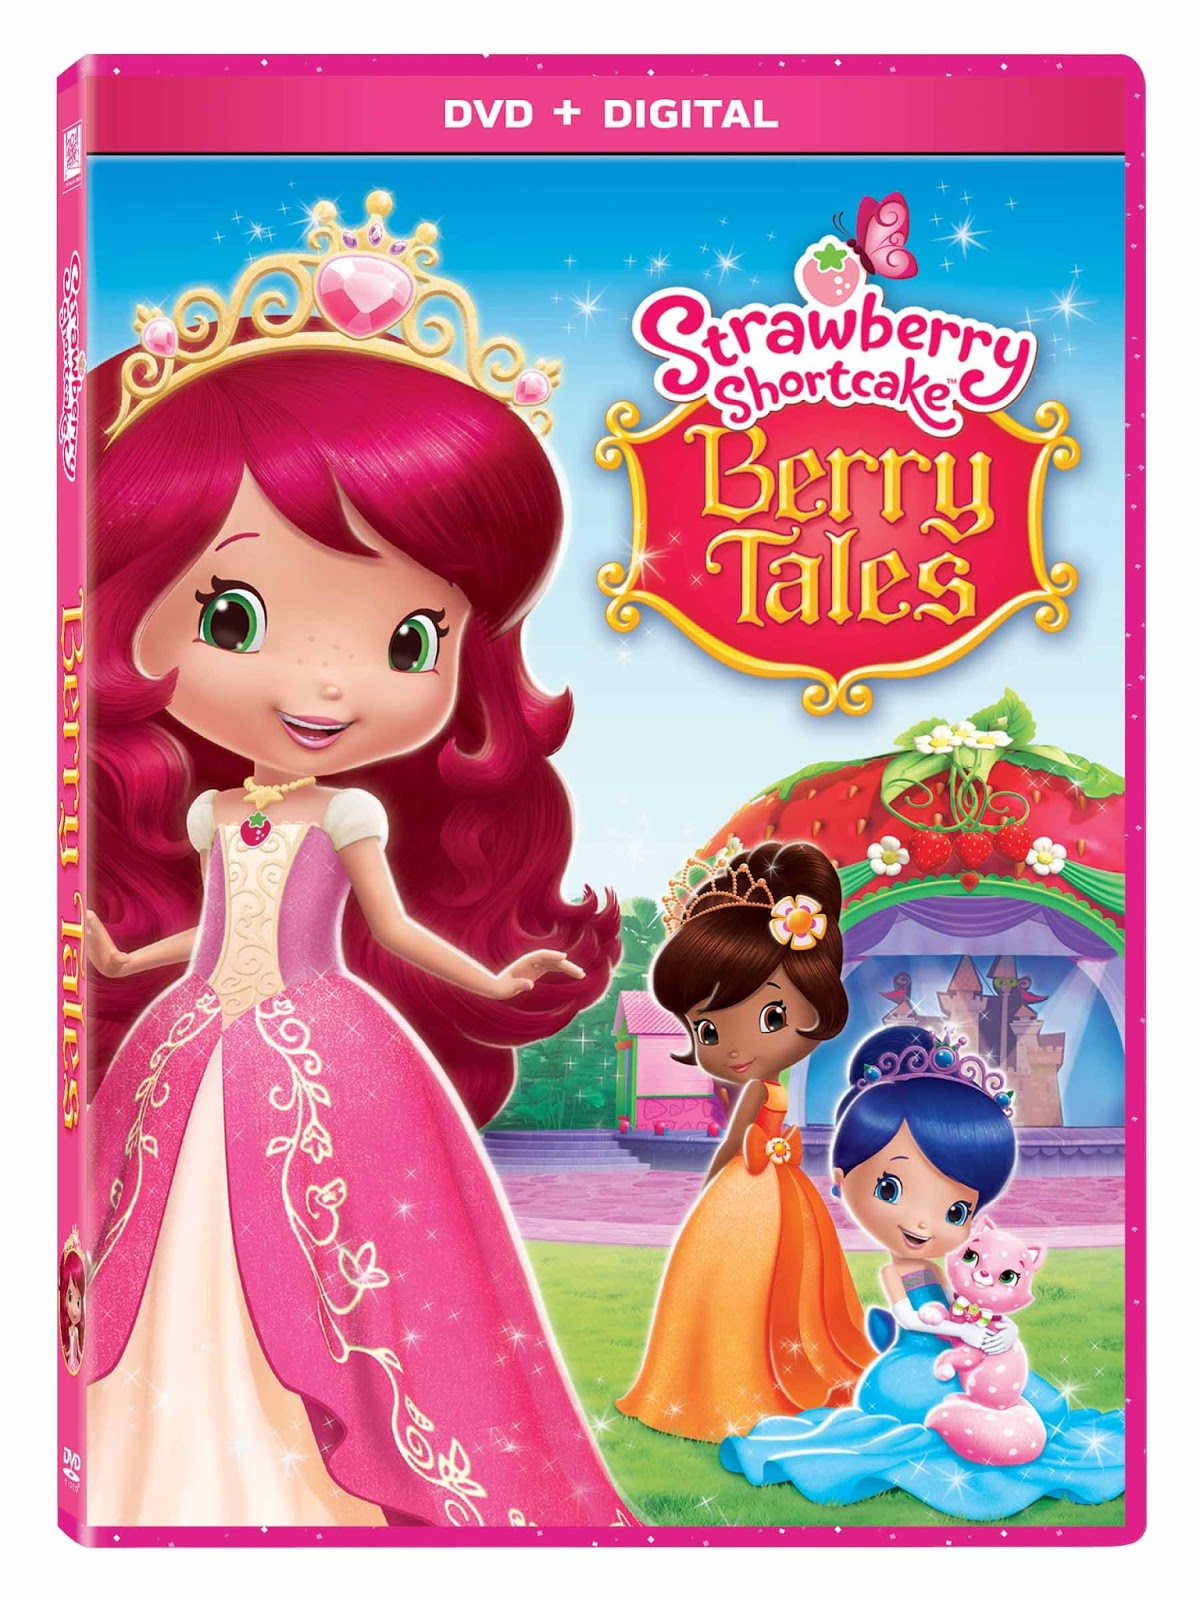 Susan S Disney Family Strawberry Shortcake Berry Tales Comes To